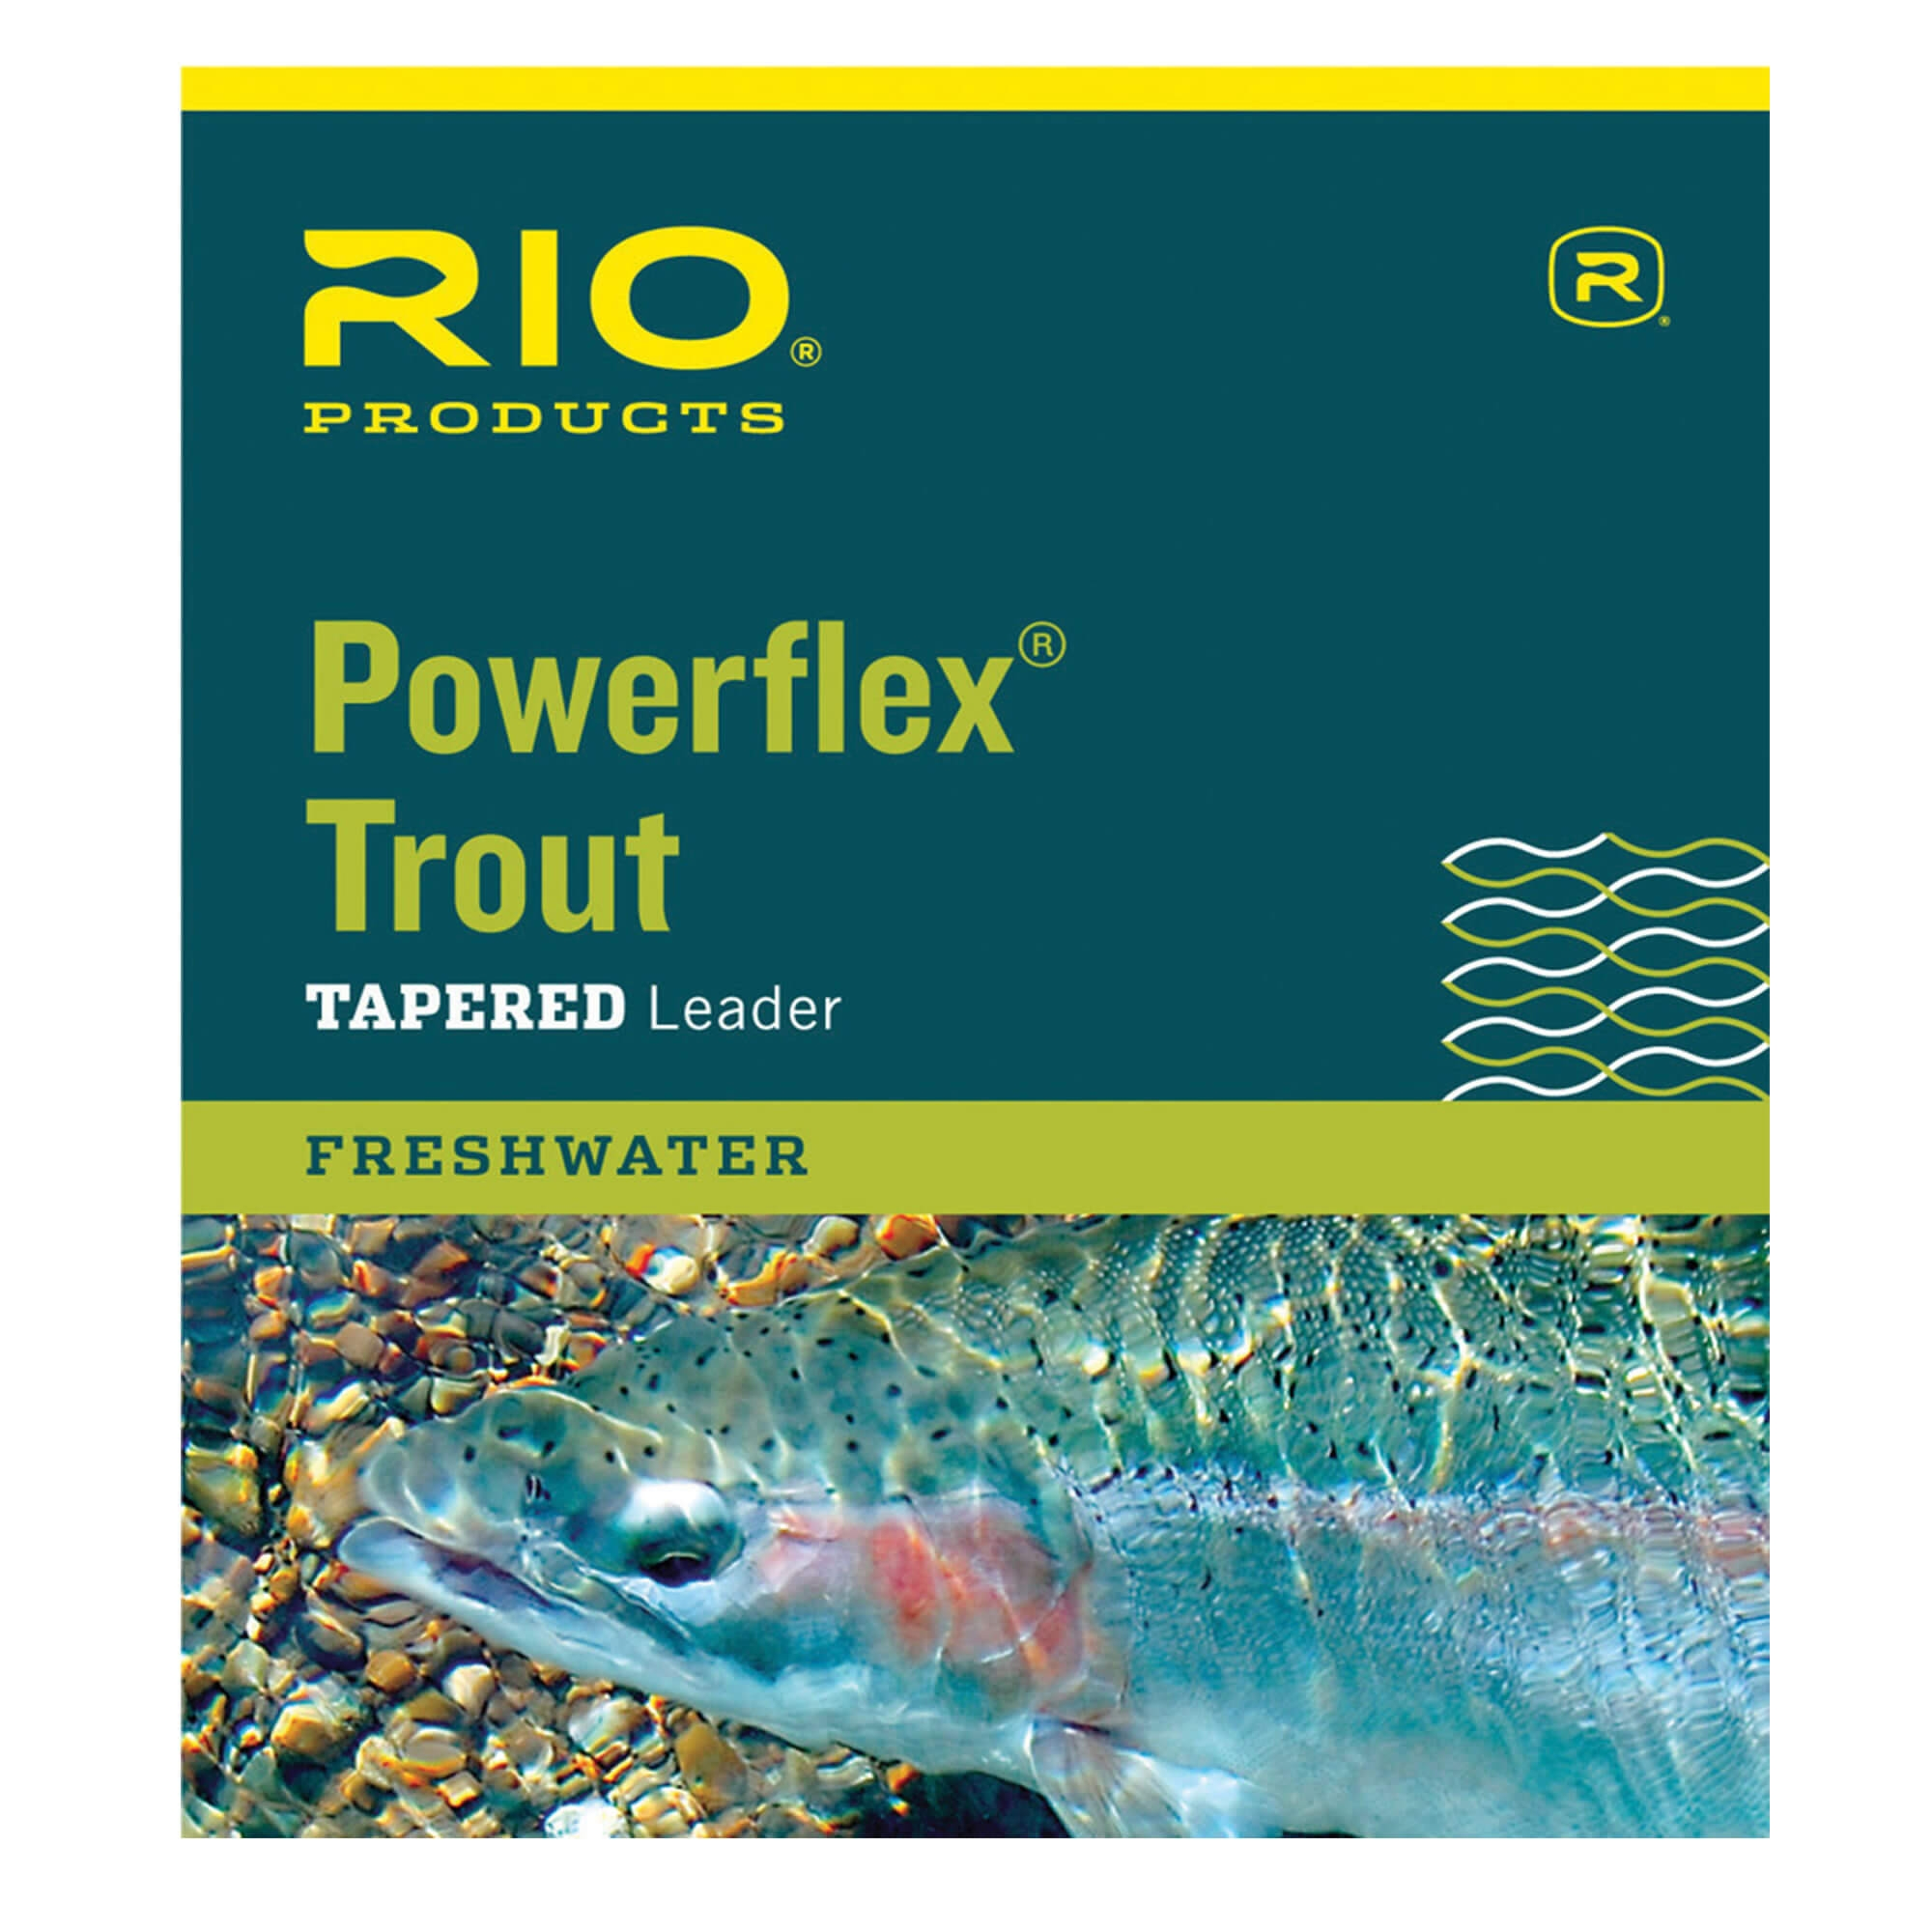 Freshwater Tapered Leader Powerflex® Trout